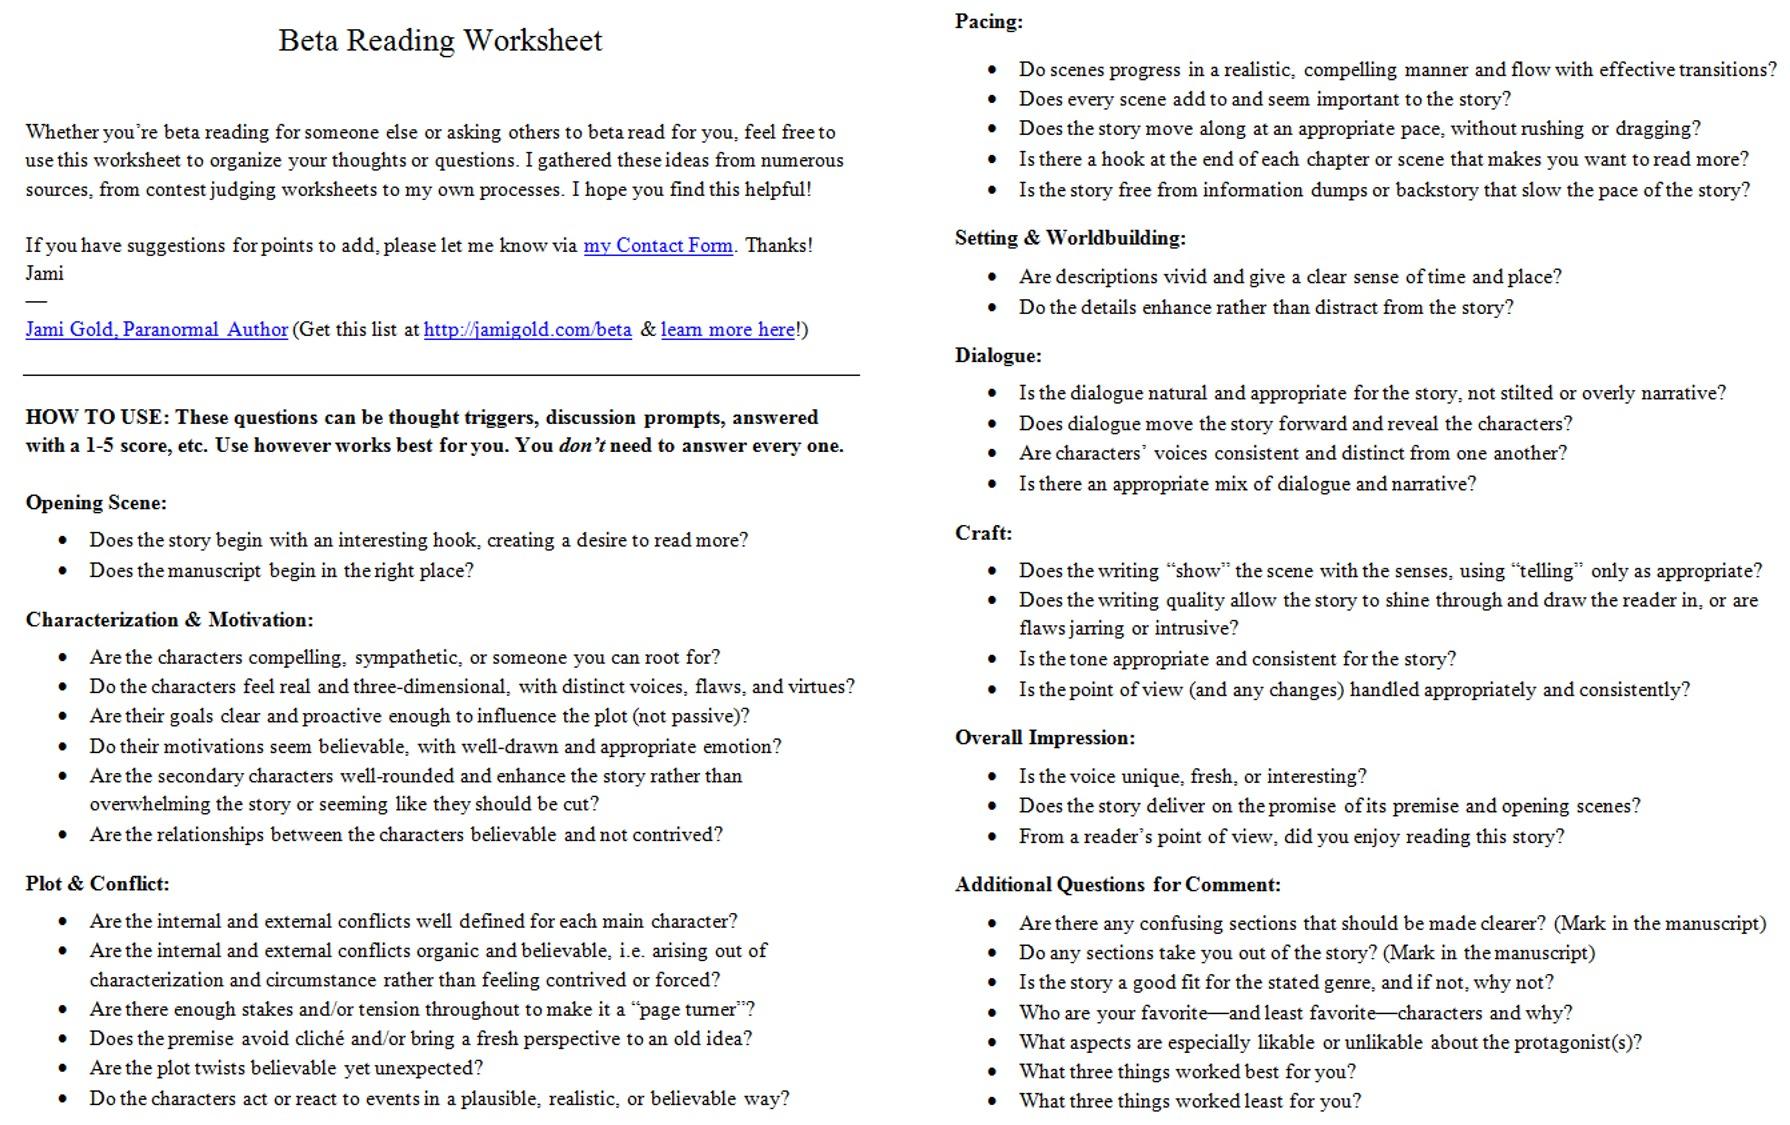 Aldiablosus  Fascinating Worksheets For Writers  Jami Gold Paranormal Author With Foxy Screen Shot Of The Twopage Beta Reading Worksheet With Cool Eyfs Worksheets Also Free Integers Worksheets In Addition Exponent Worksheets For Th Grade And Parts Of A Circle Worksheets As Well As Skip Counting Worksheets For Kindergarten Additionally Science Worksheets Second Grade From Jamigoldcom With Aldiablosus  Foxy Worksheets For Writers  Jami Gold Paranormal Author With Cool Screen Shot Of The Twopage Beta Reading Worksheet And Fascinating Eyfs Worksheets Also Free Integers Worksheets In Addition Exponent Worksheets For Th Grade From Jamigoldcom